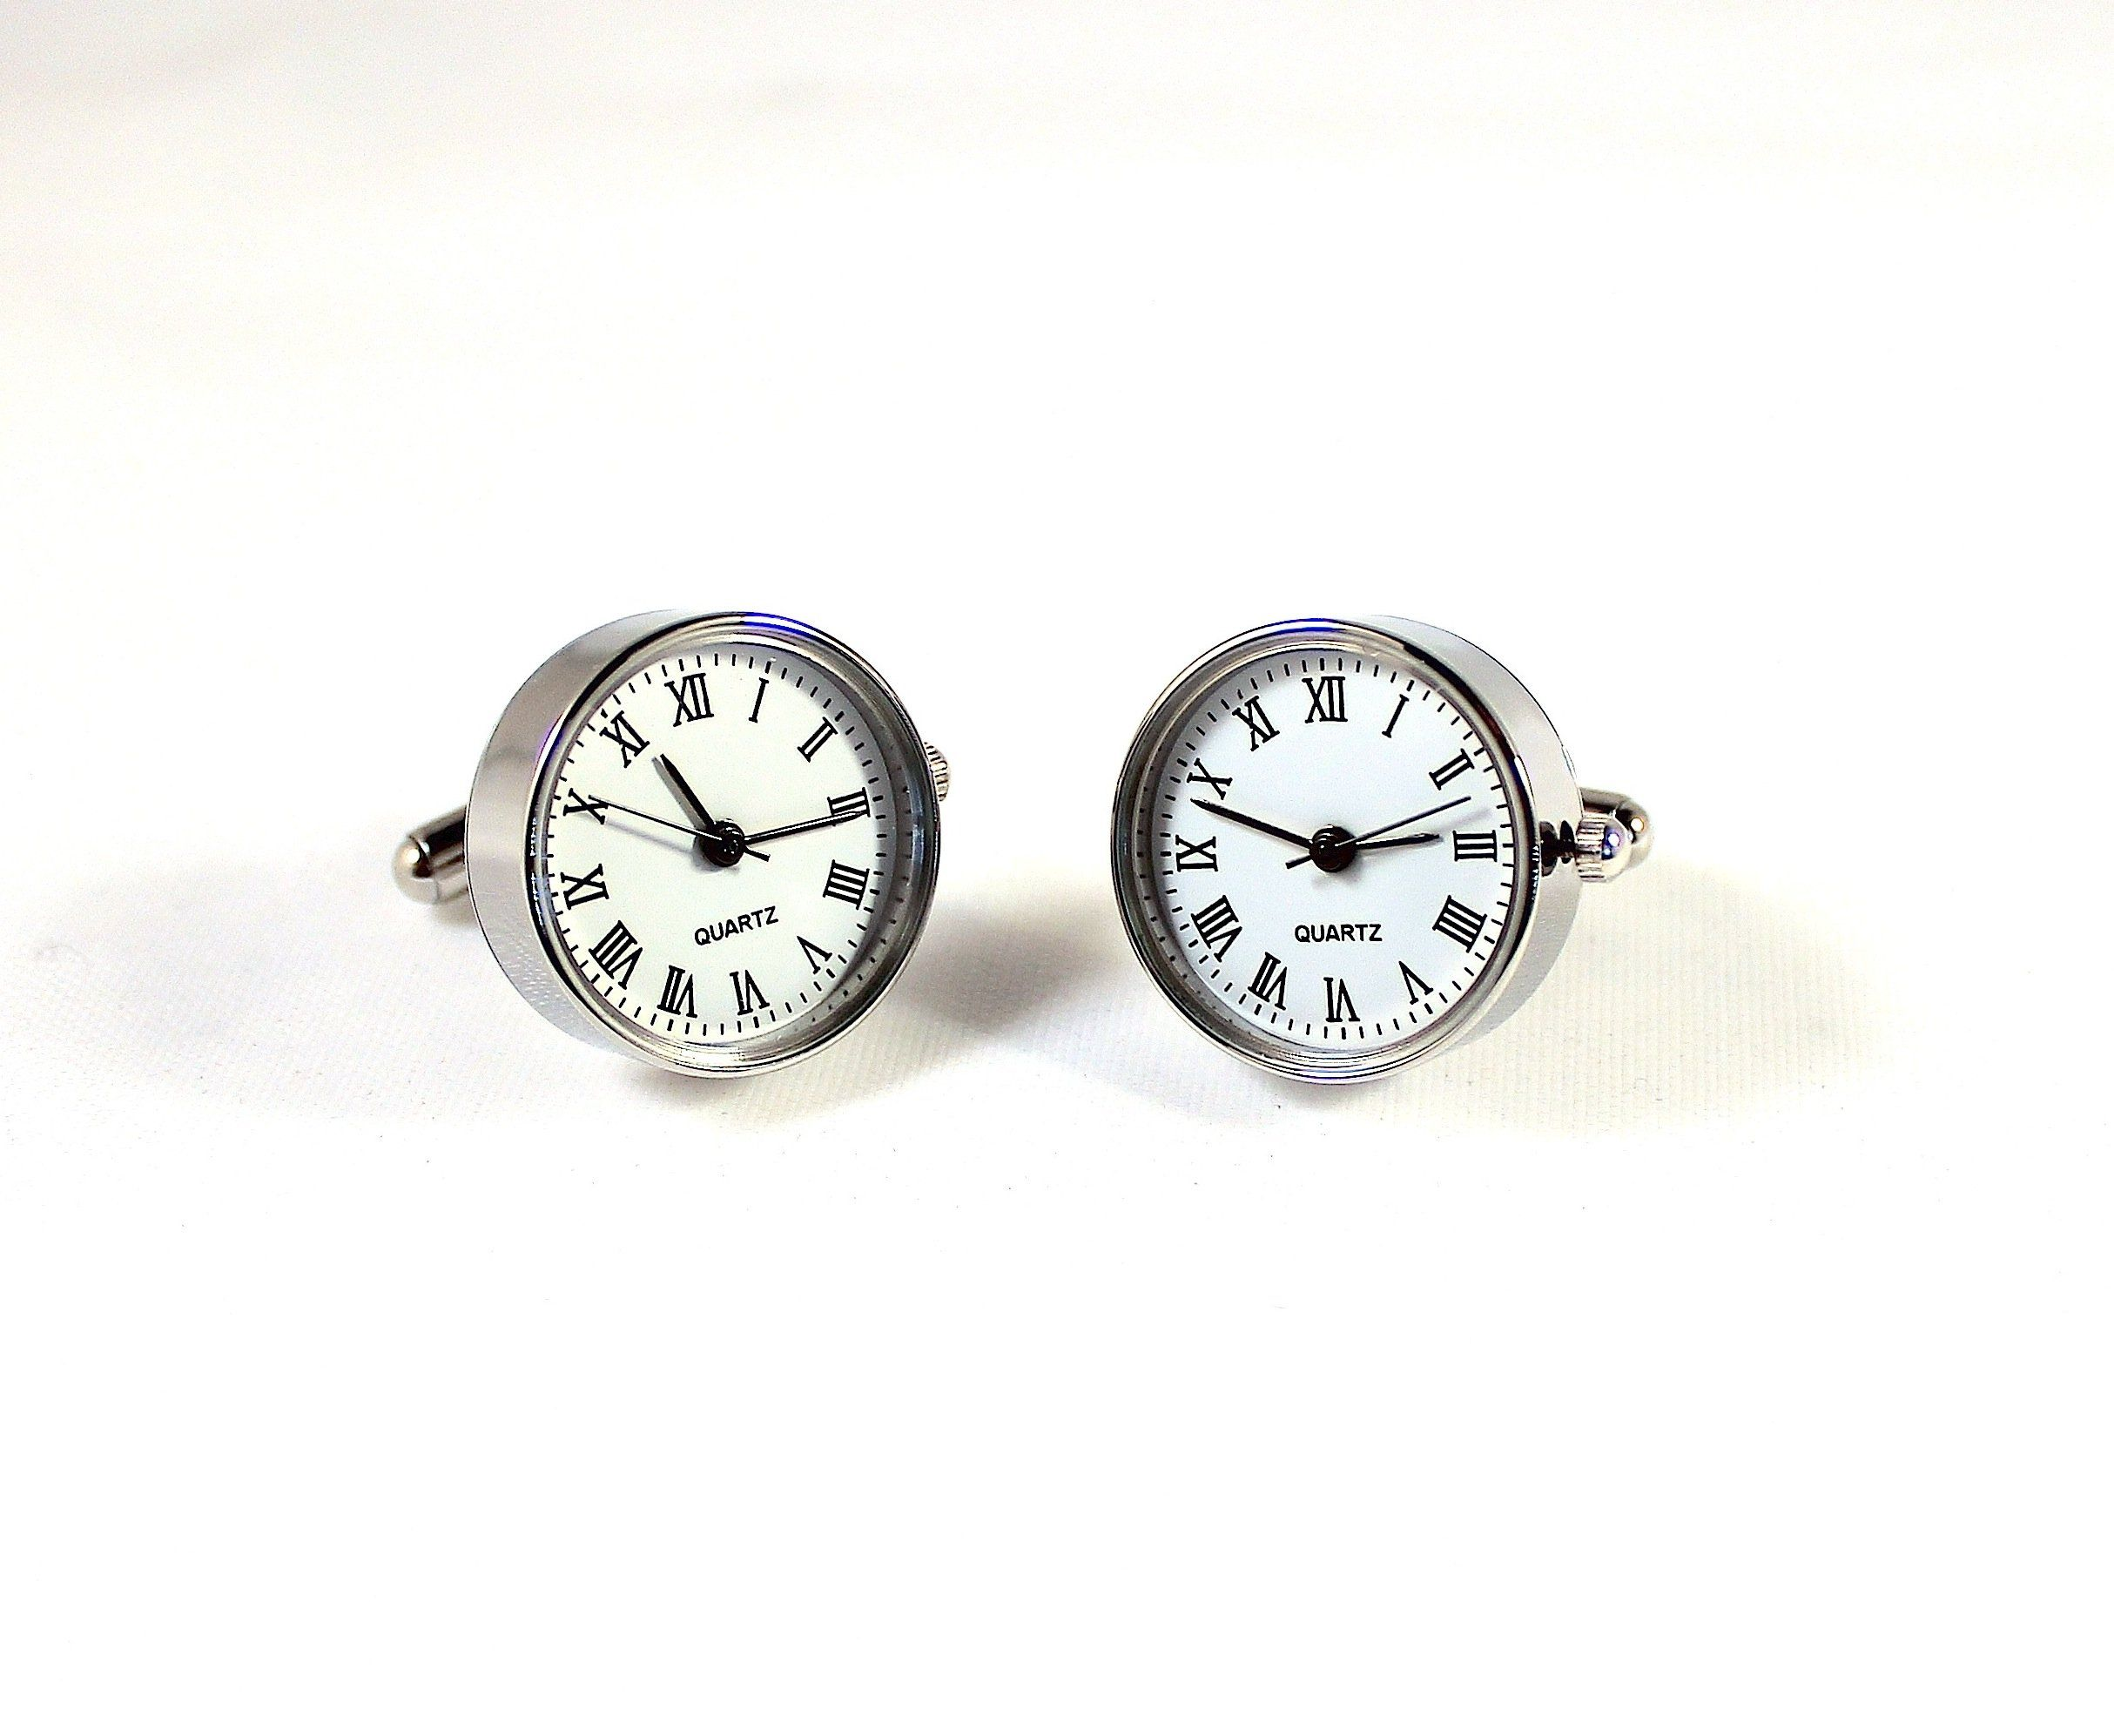 """Functional Watch Cufflinks Quartz Clock Gift Wedding Time Piece. Dimensions: 13/16"""" by 13/16"""". Color: White. Weight: 20g. Material: Rhodium."""